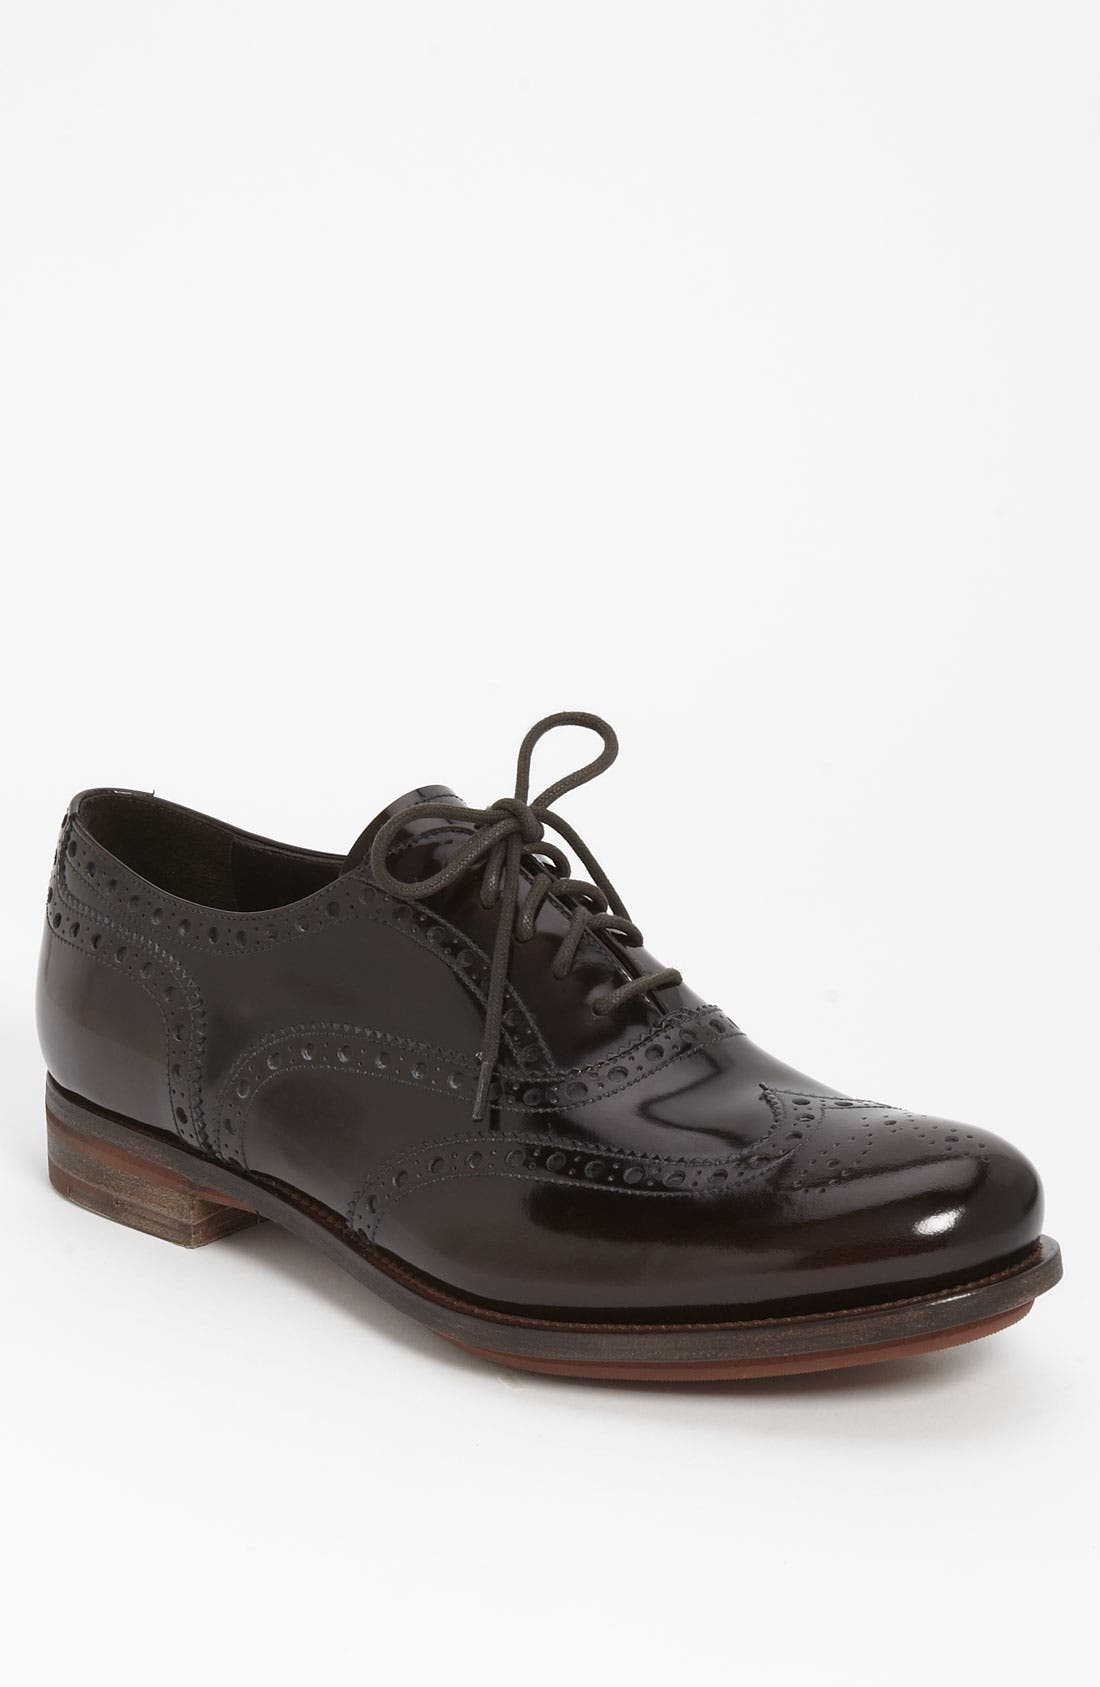 Alternate Image 1 Selected - Prada Wingtip Oxford